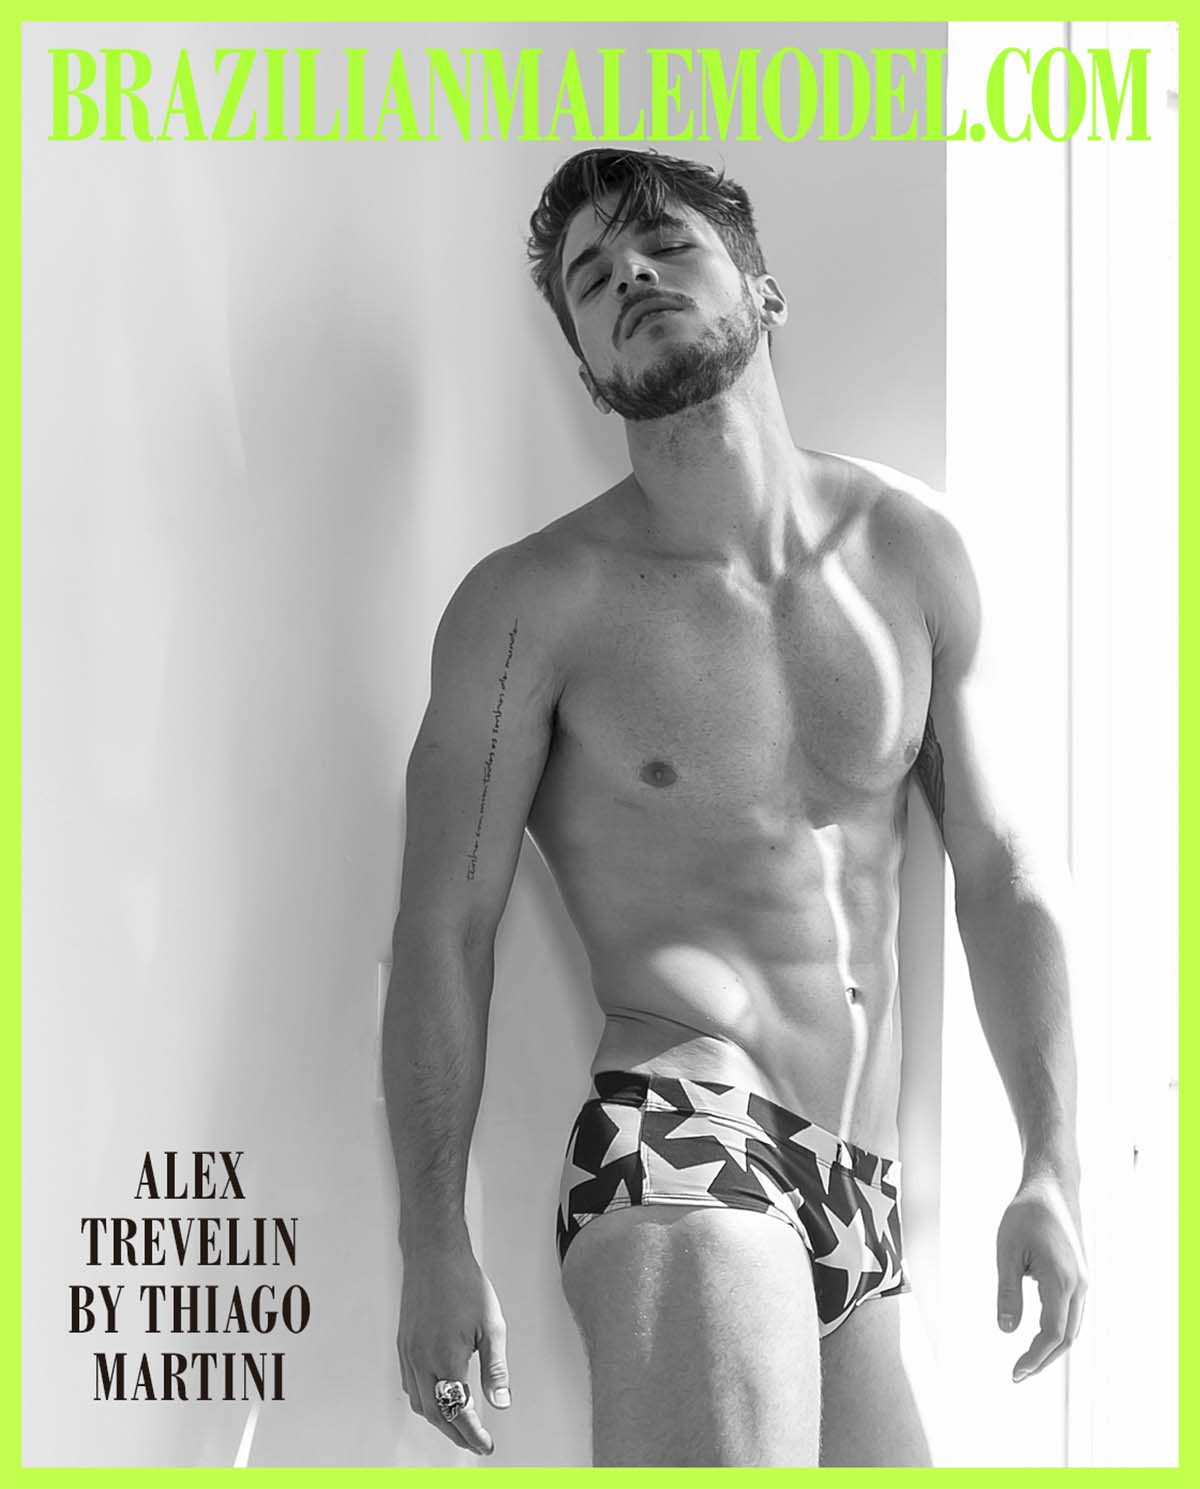 Alex Trevelin by Thiago Martini X YUP MAGAZINE